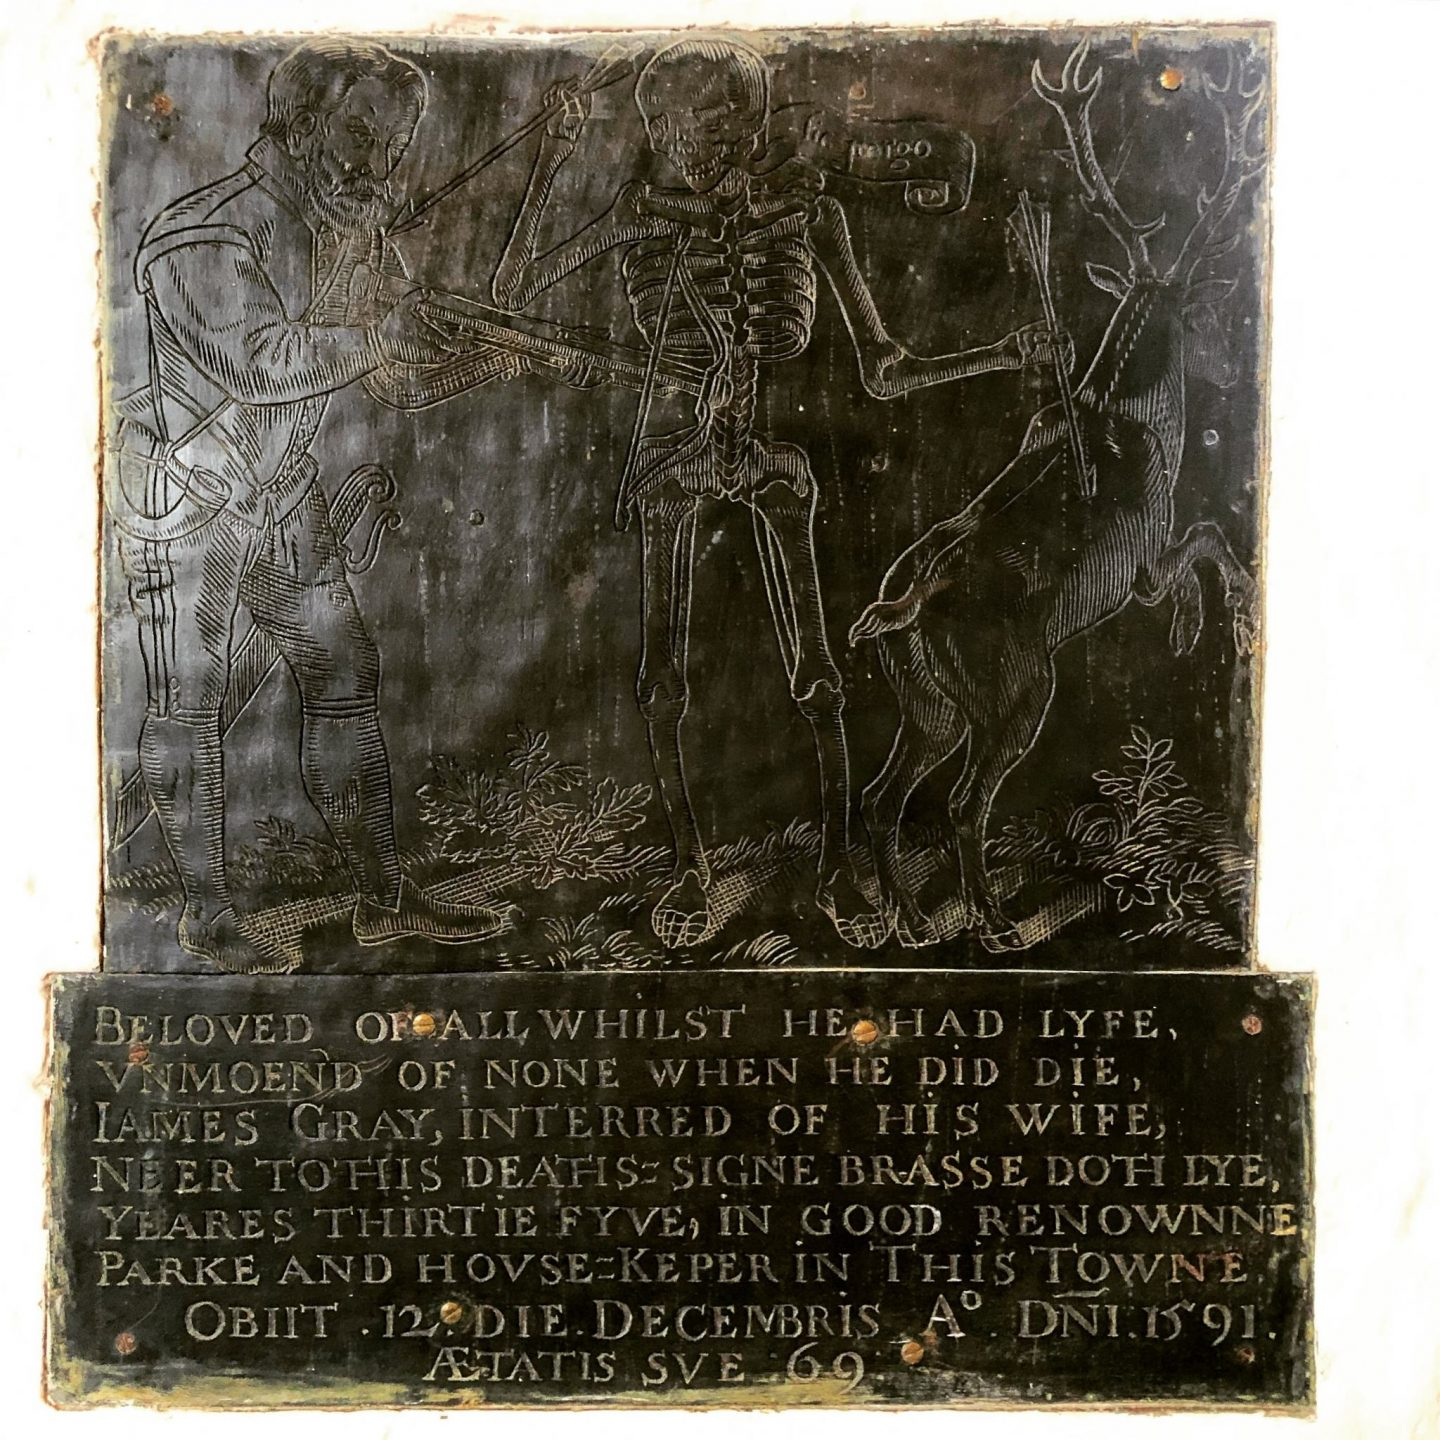 Monumental brass from St Dunstan's church, Hunsdon, dedicated to James Gray who died while out hunting.